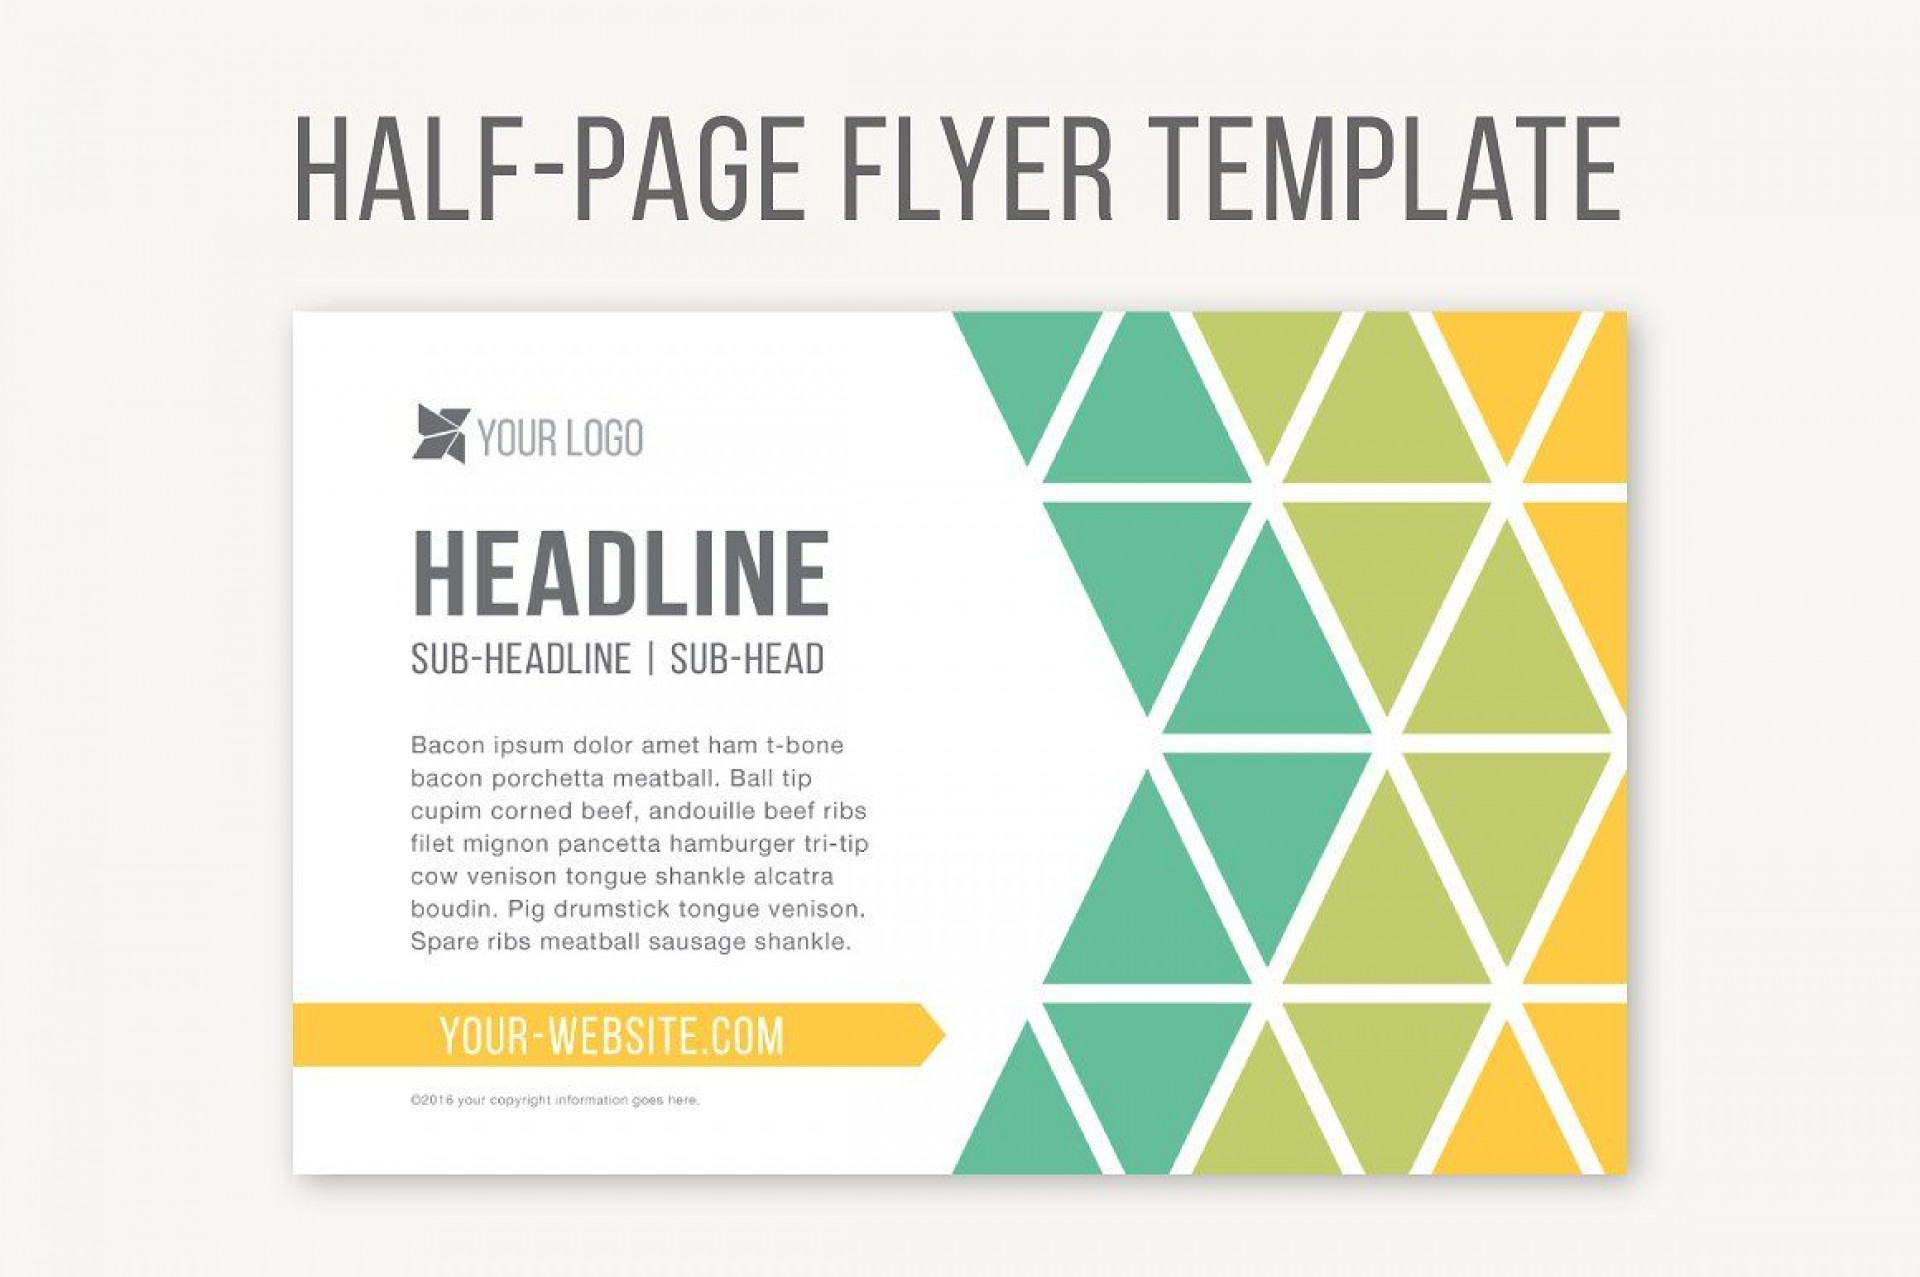 Half Sheet Flyer Template Brochure Idea  Free Word Google Doc1920